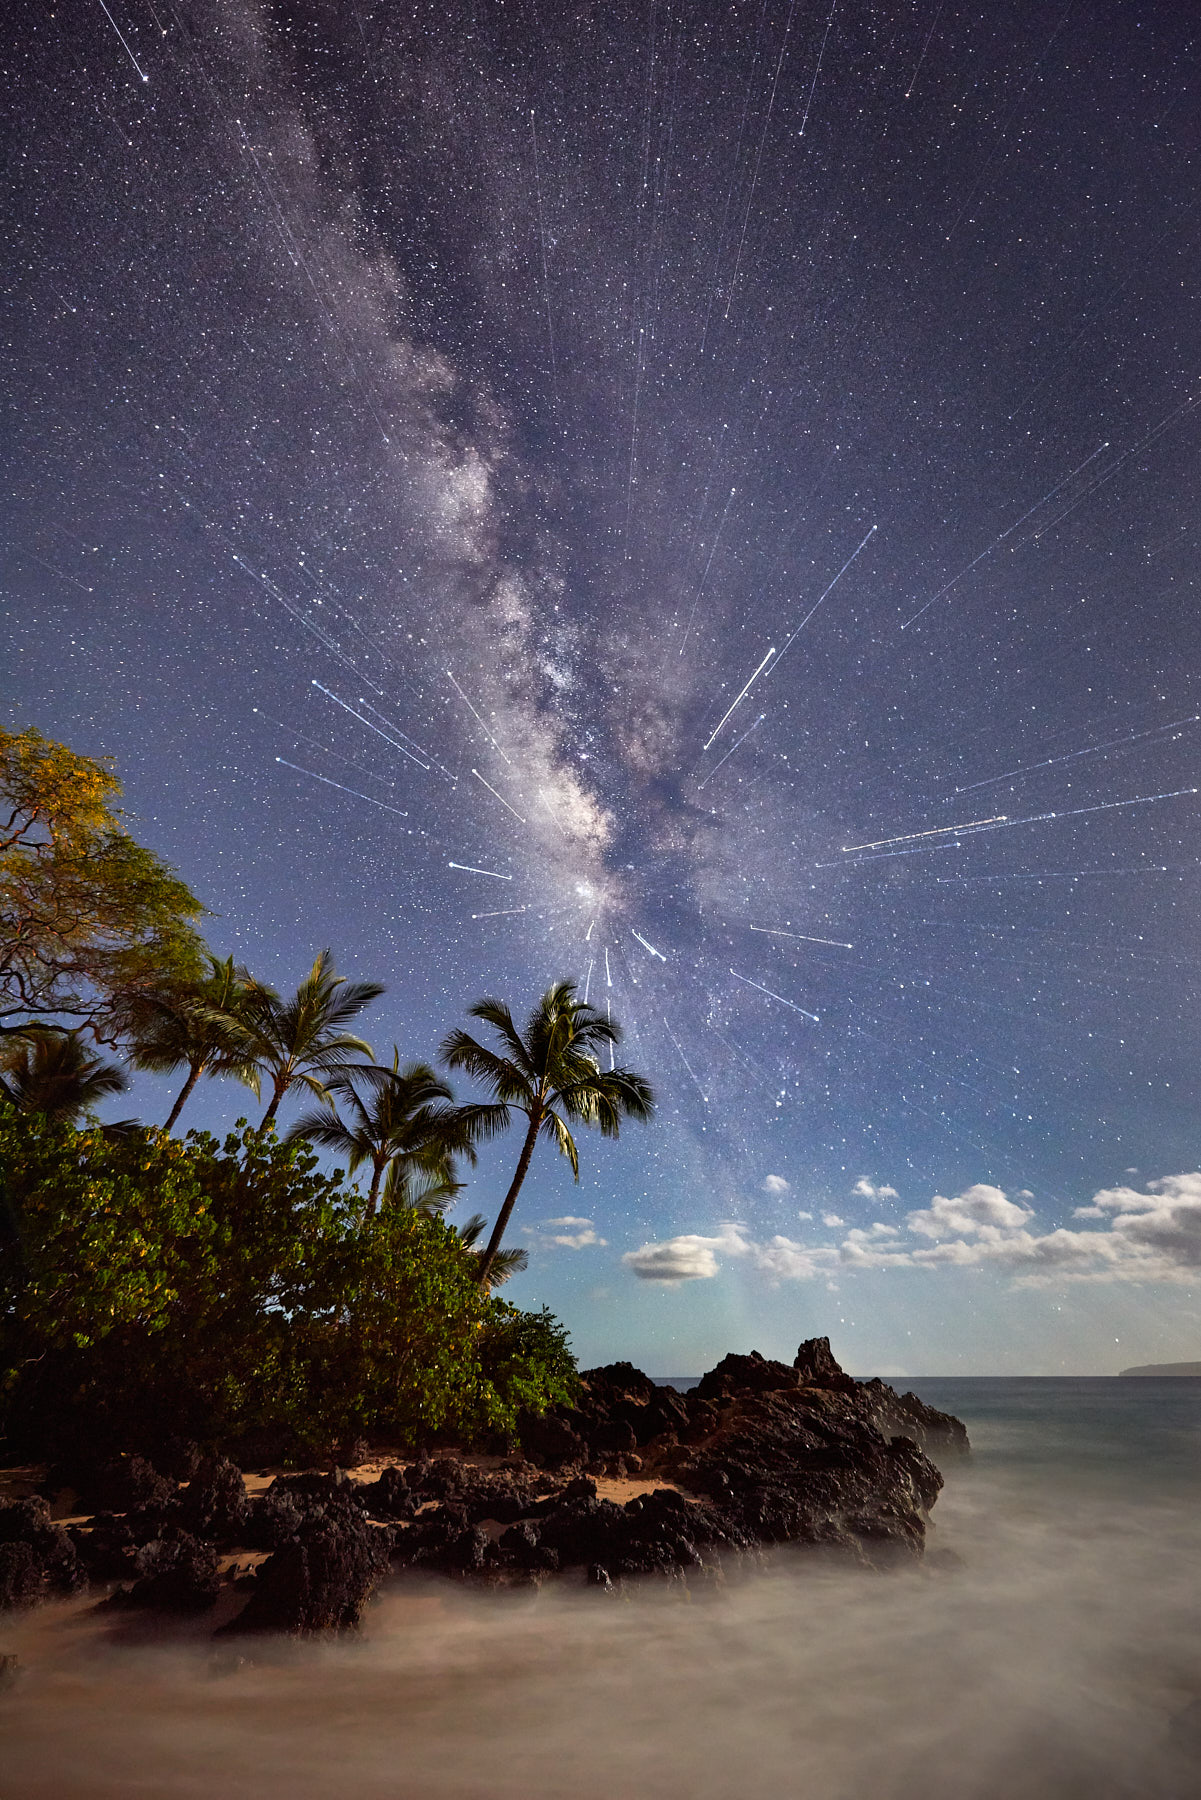 a mix of two long exposure photographs and one with a zoom lens gives a hyperspace effect to this milky way night scene at Secret Beach in Makena Maui